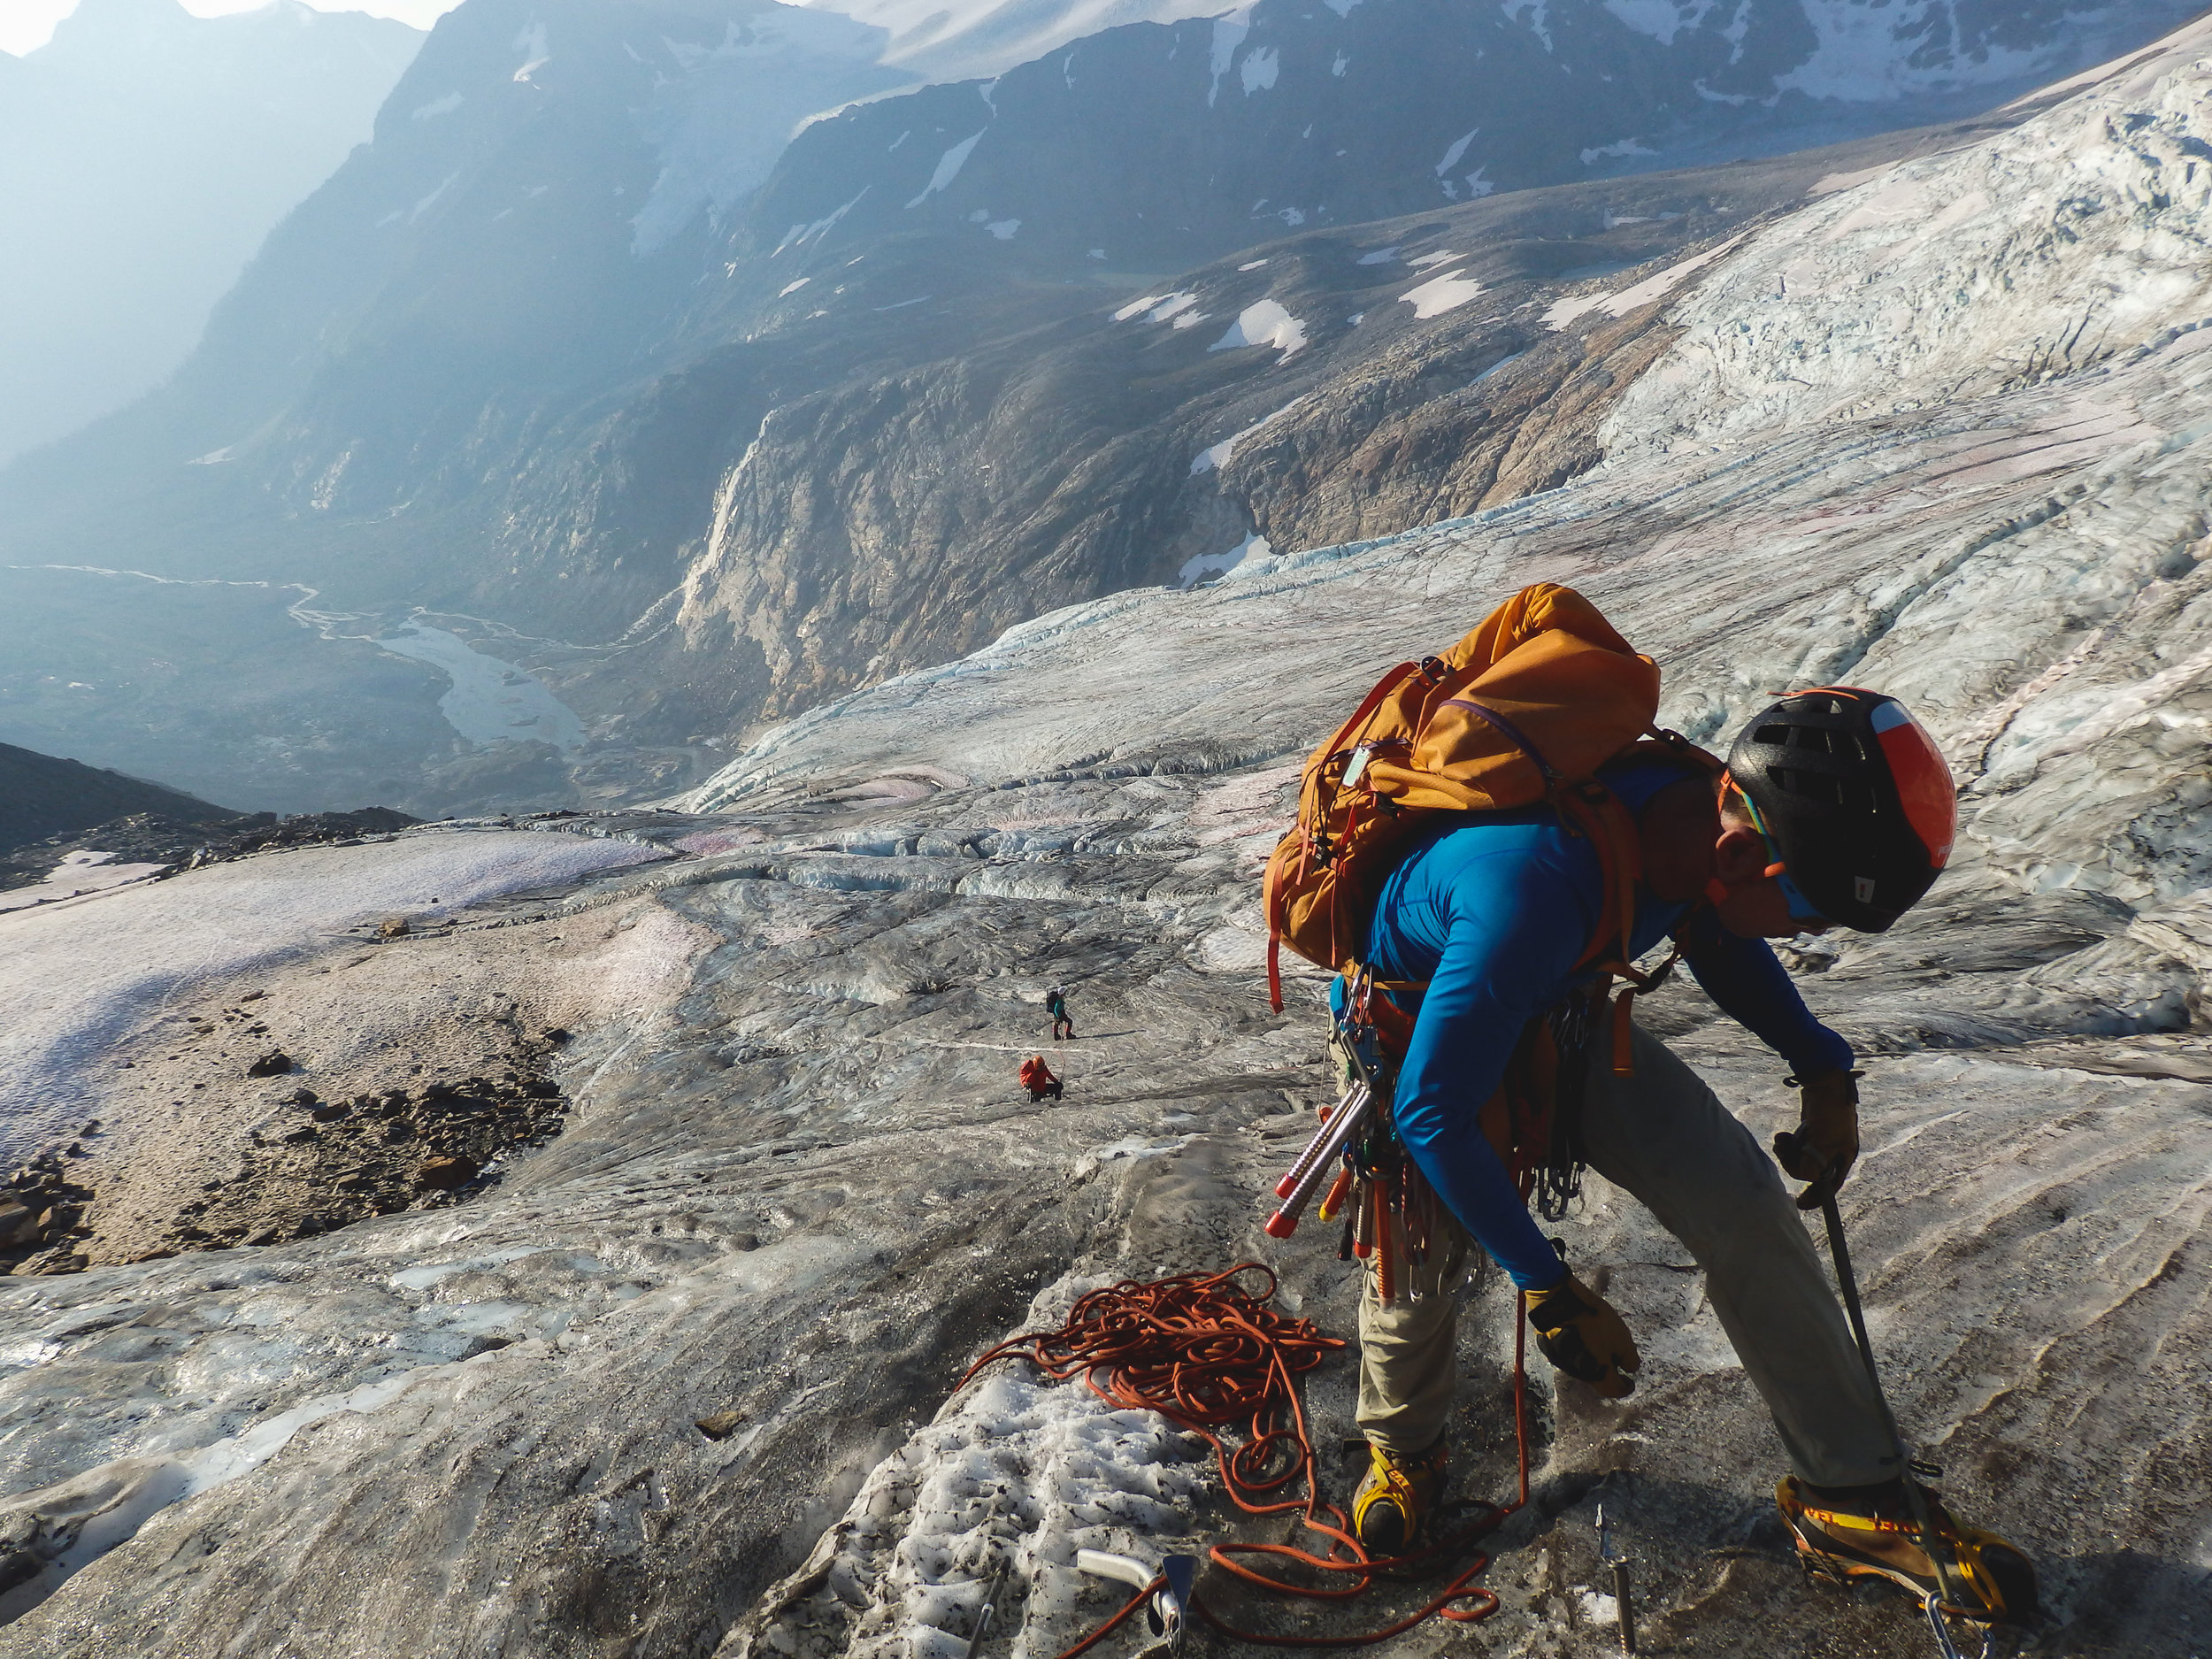 """Larry Shiu placing protection during the climb of """"The Riddle"""" glacier, en route to False Hallam (a.k.a. """"Helium"""") Peak. Behind him are Serena Polt and Wendell Martin. Camp is seen down the valley in the distance. Photo: Gadi Maayan."""